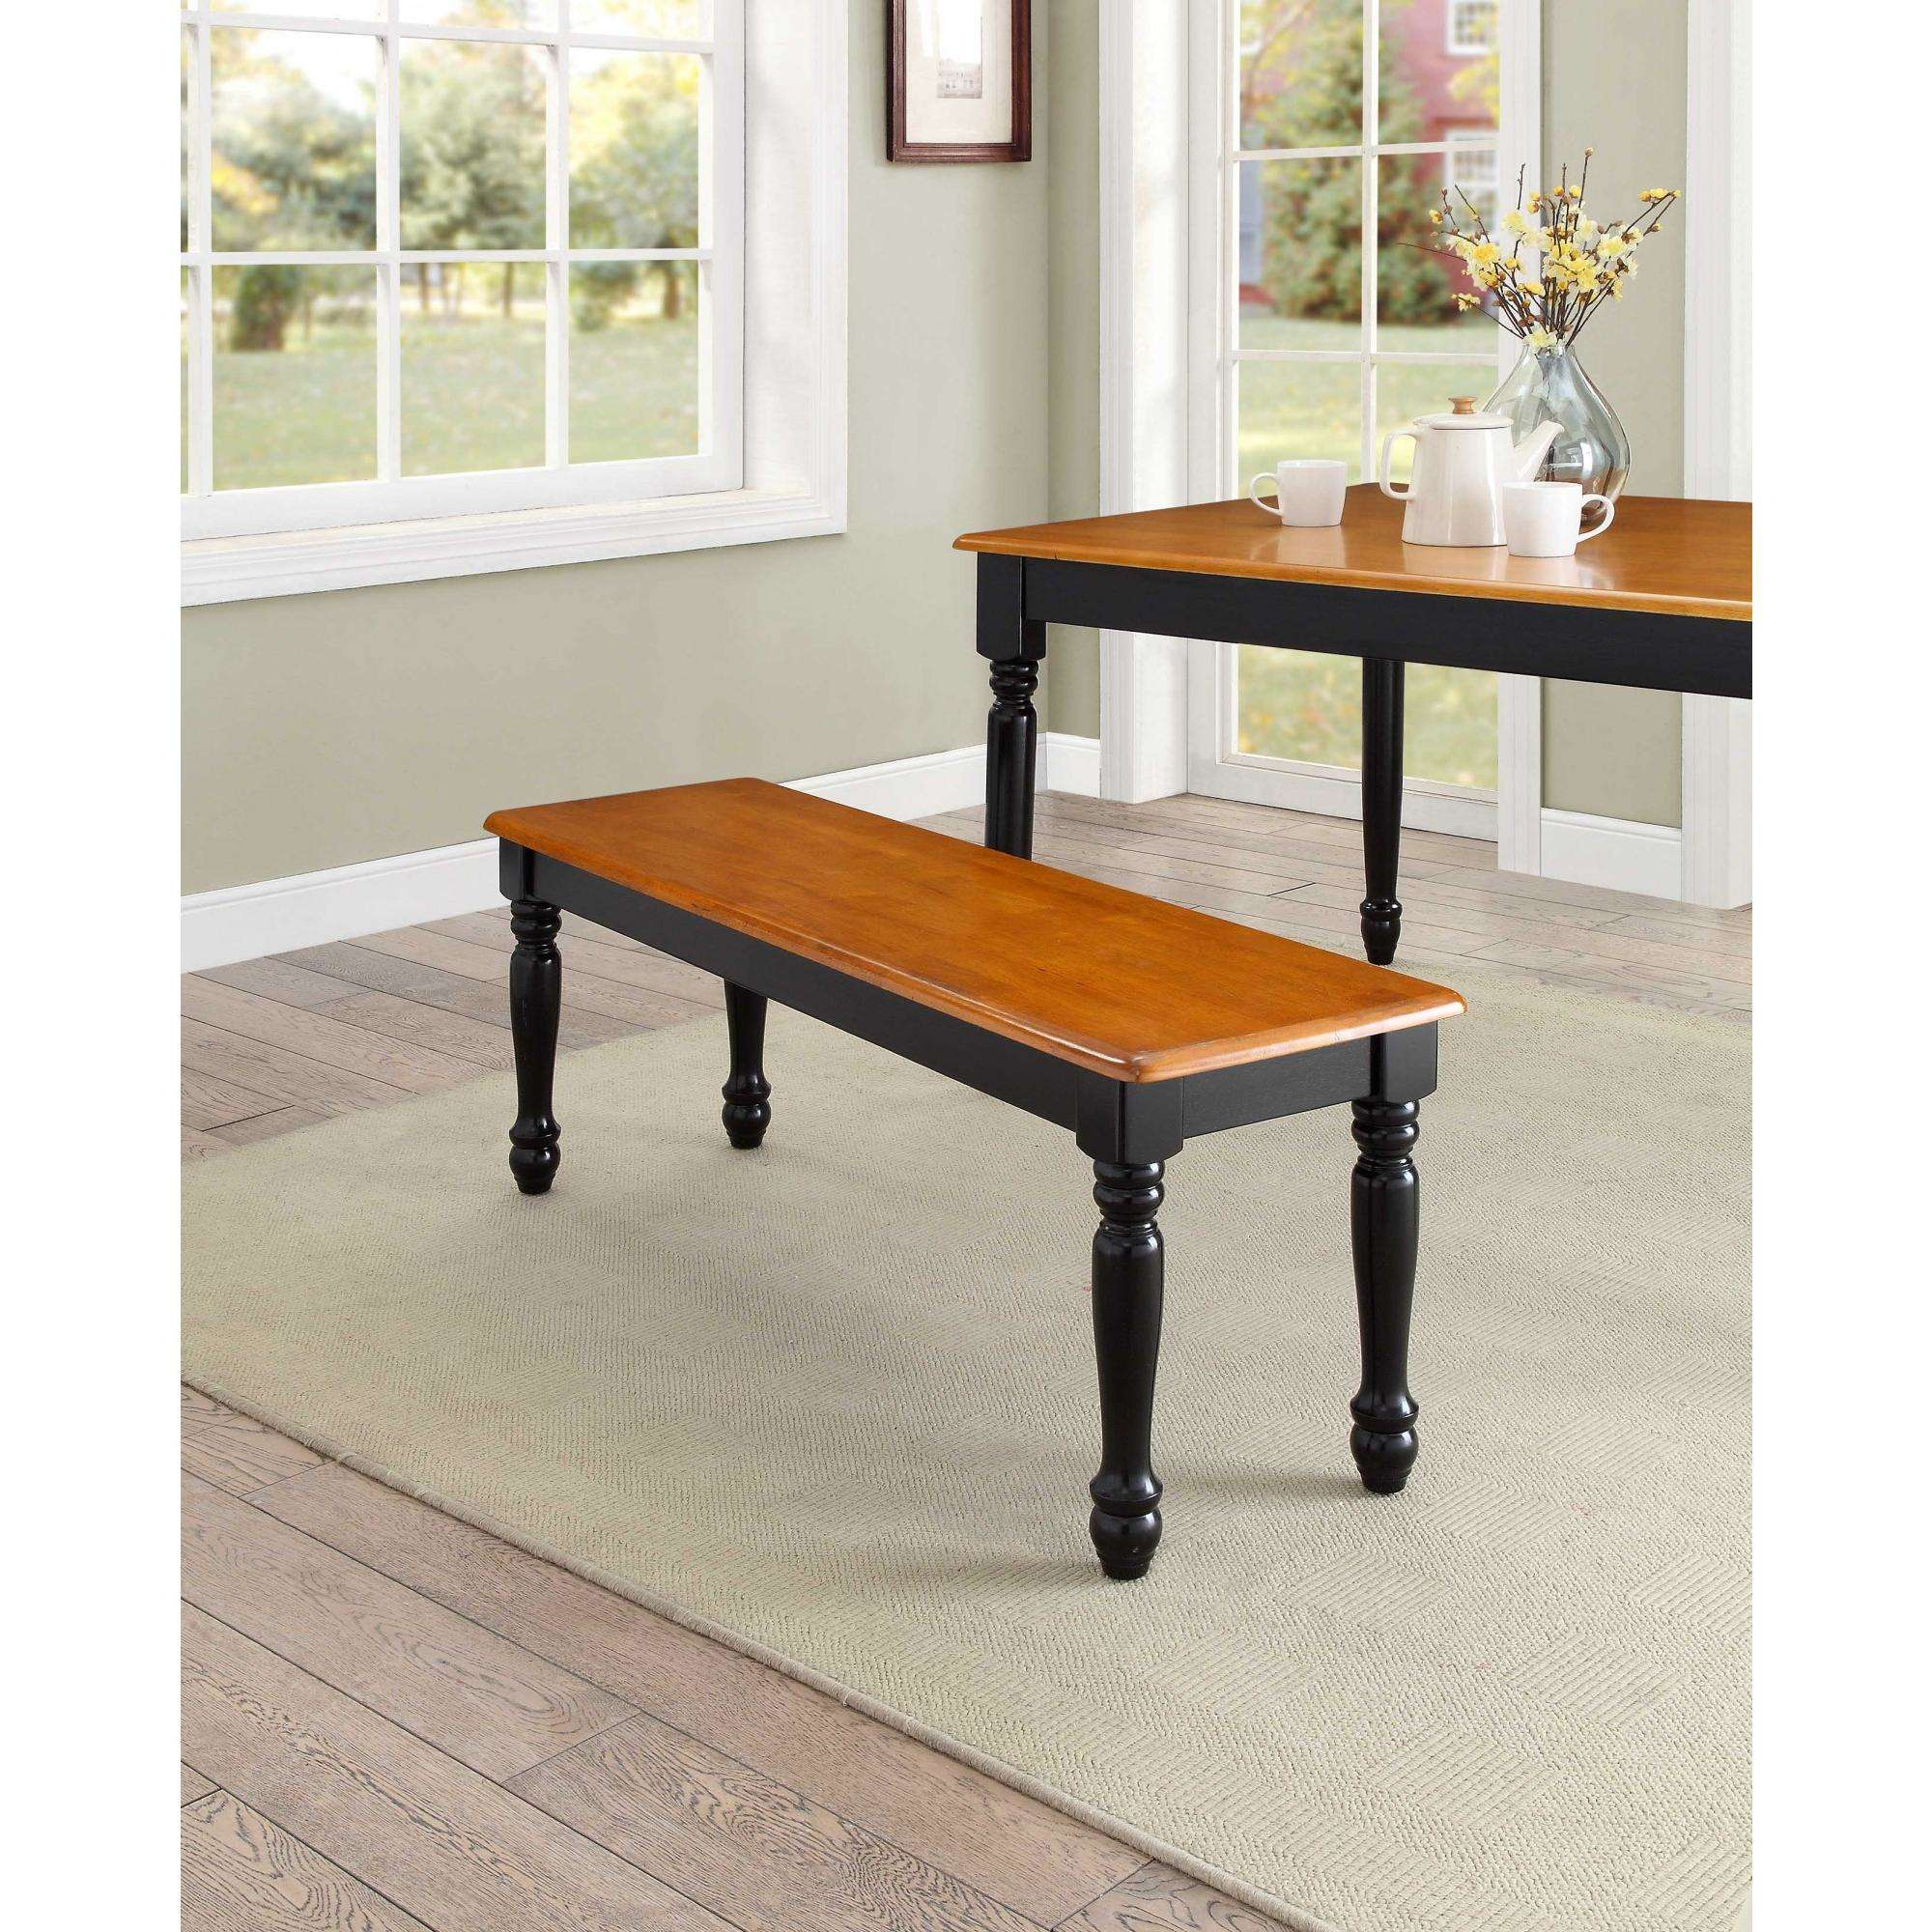 Wooden Bench Table Better Homes Gardens Autumn Lane Farmhouse Solid Wood Dining Bench Black And Natural Finish